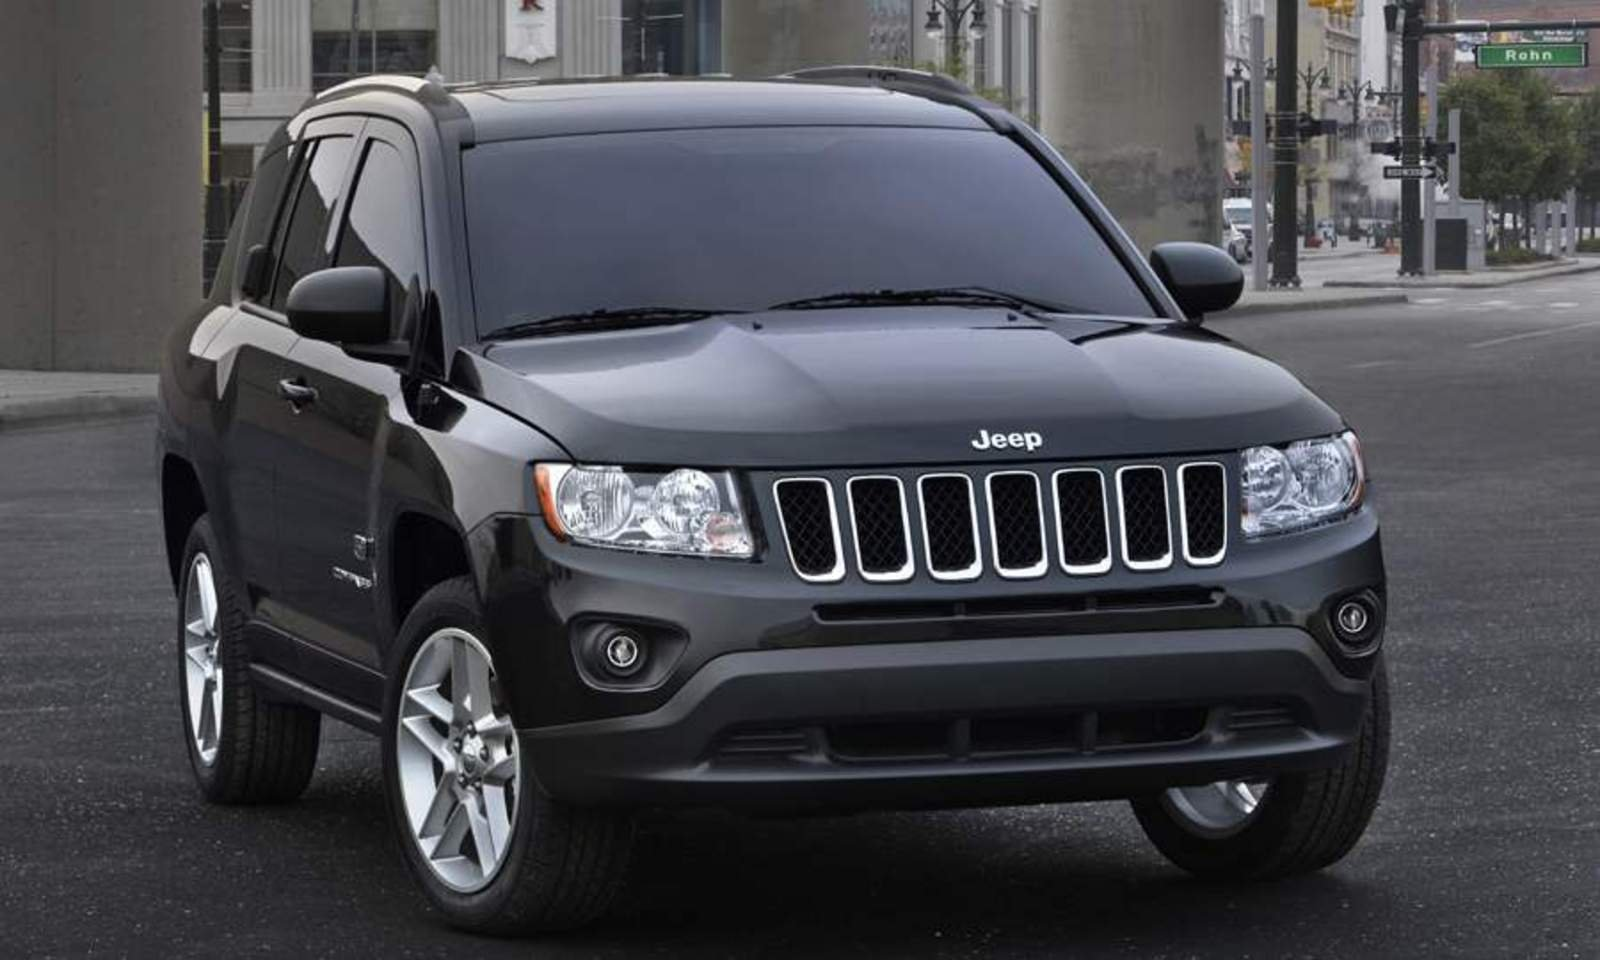 2011 jeep compass 70th anniversary edition review top speed. Black Bedroom Furniture Sets. Home Design Ideas